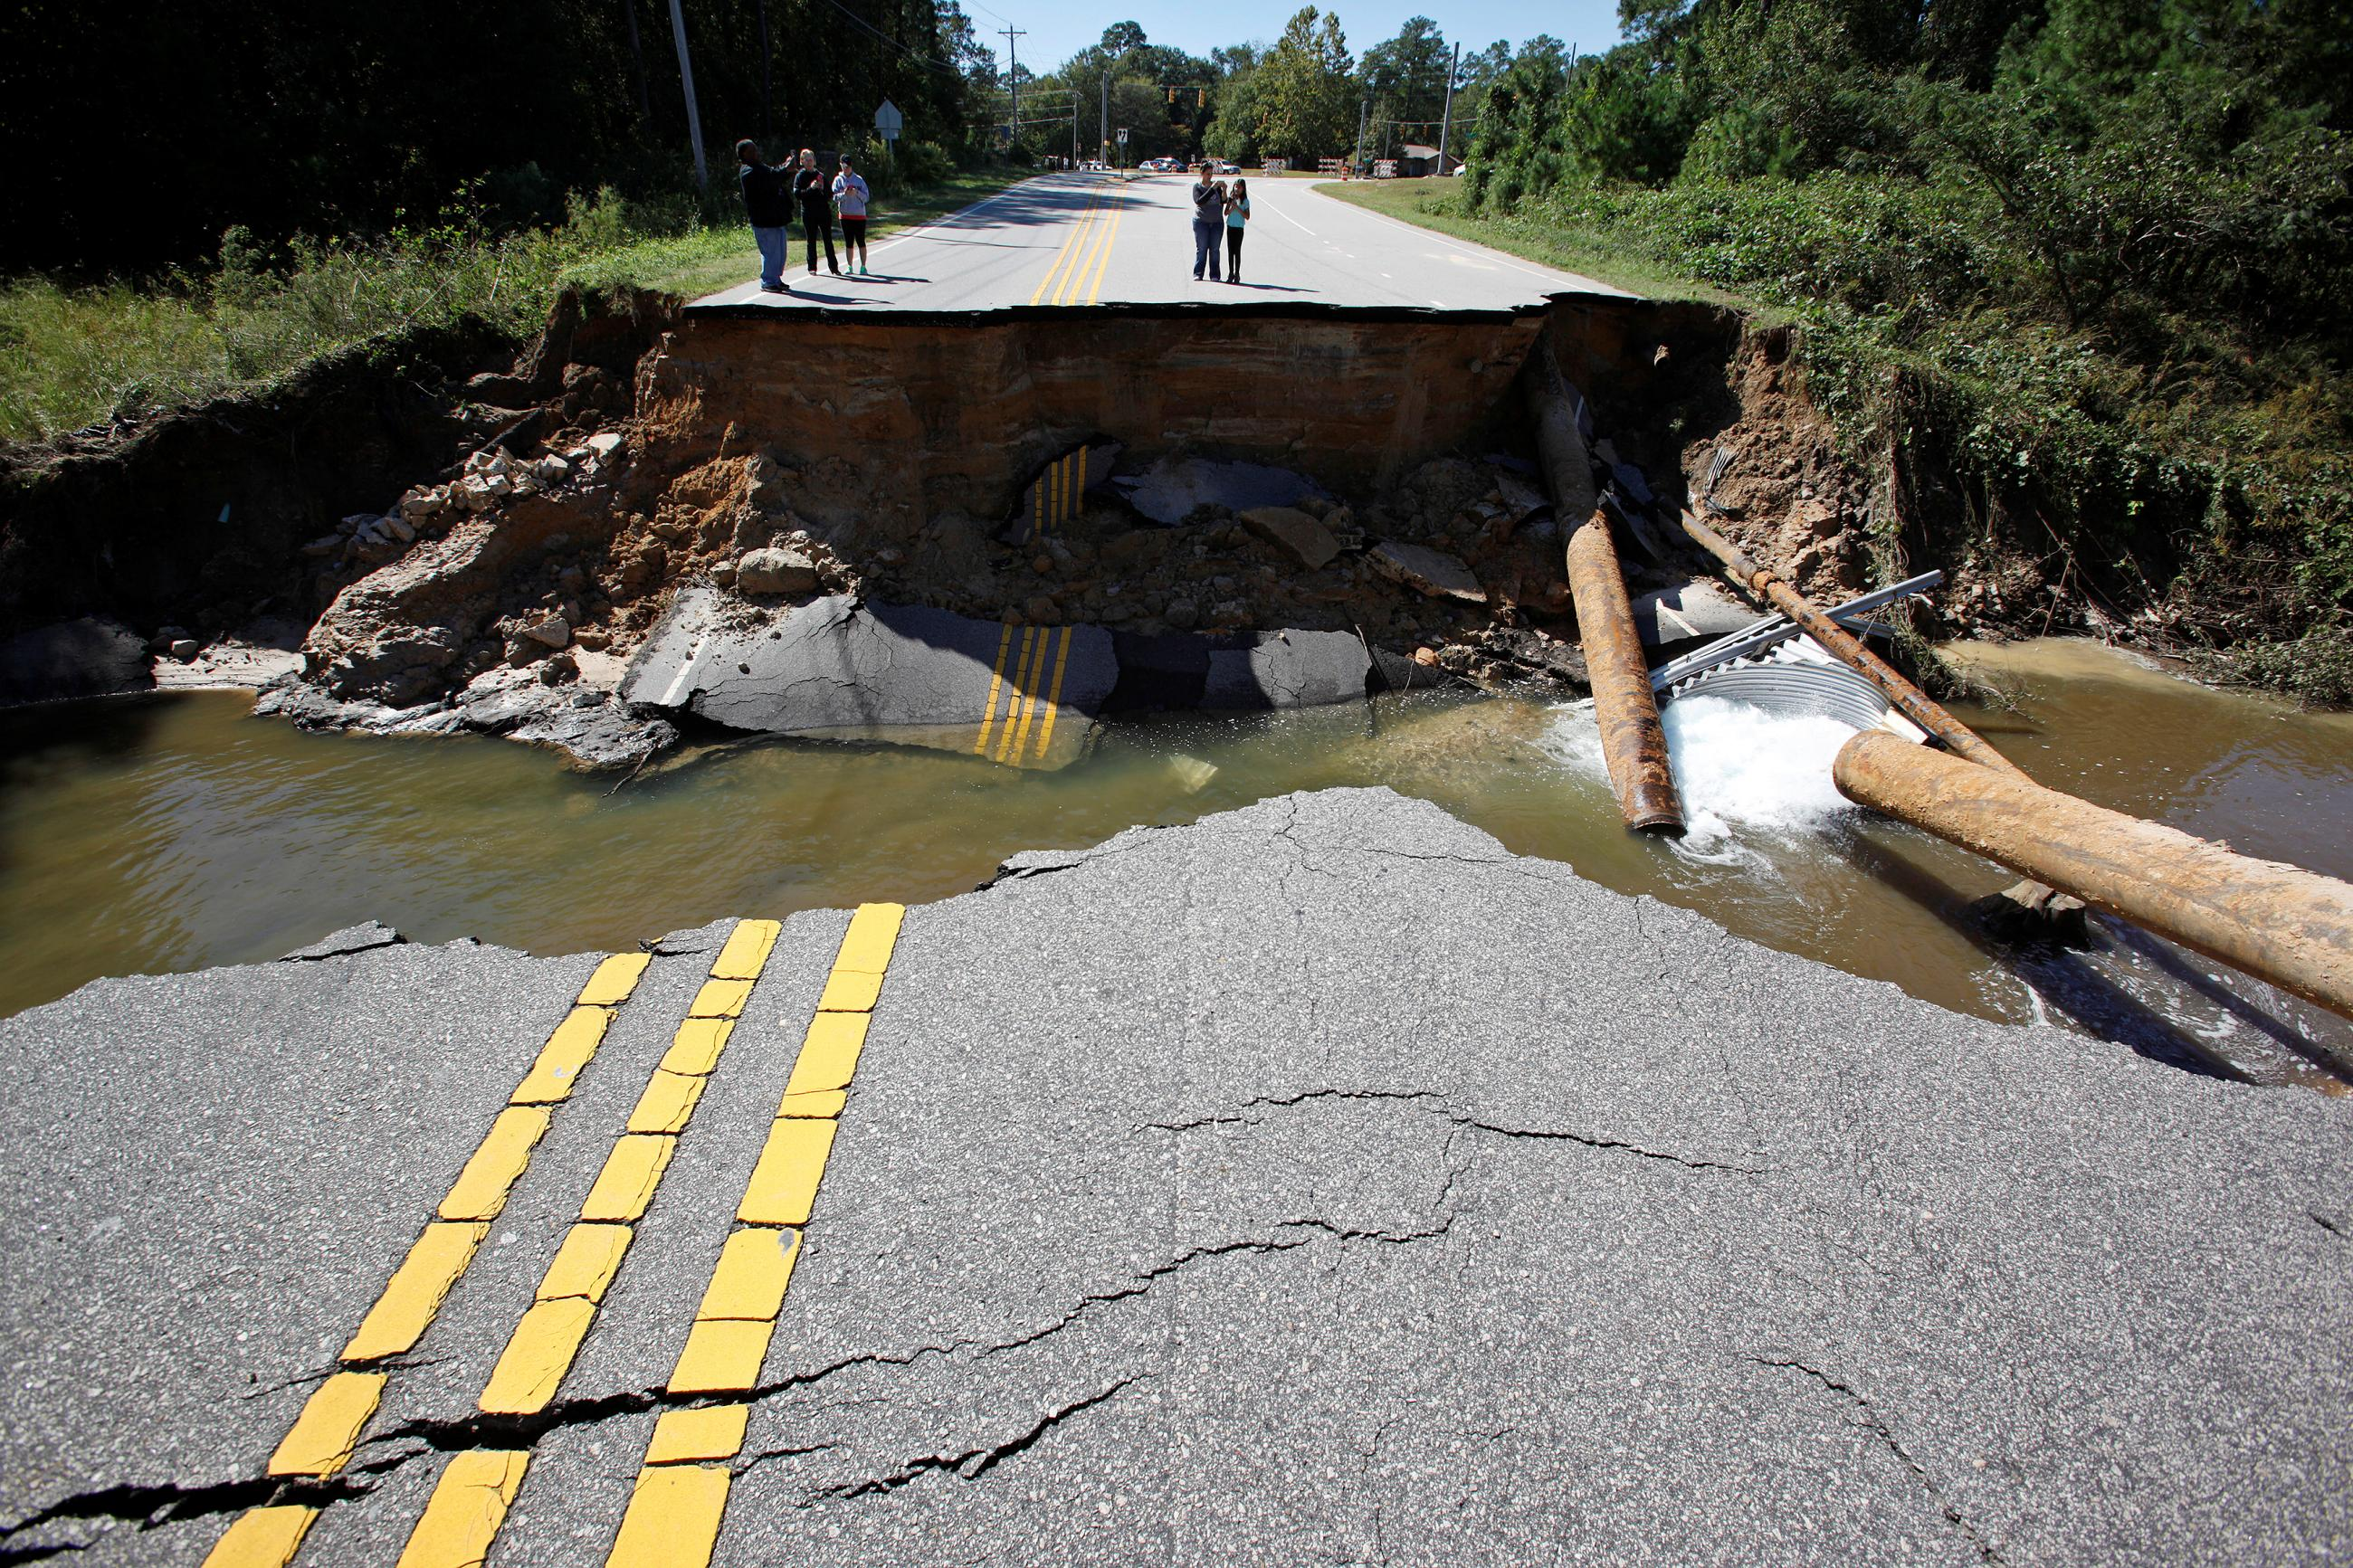 Residents inspect a washed-out section of collapsed road after Hurricane Matthew hit the state, in North Carolina.